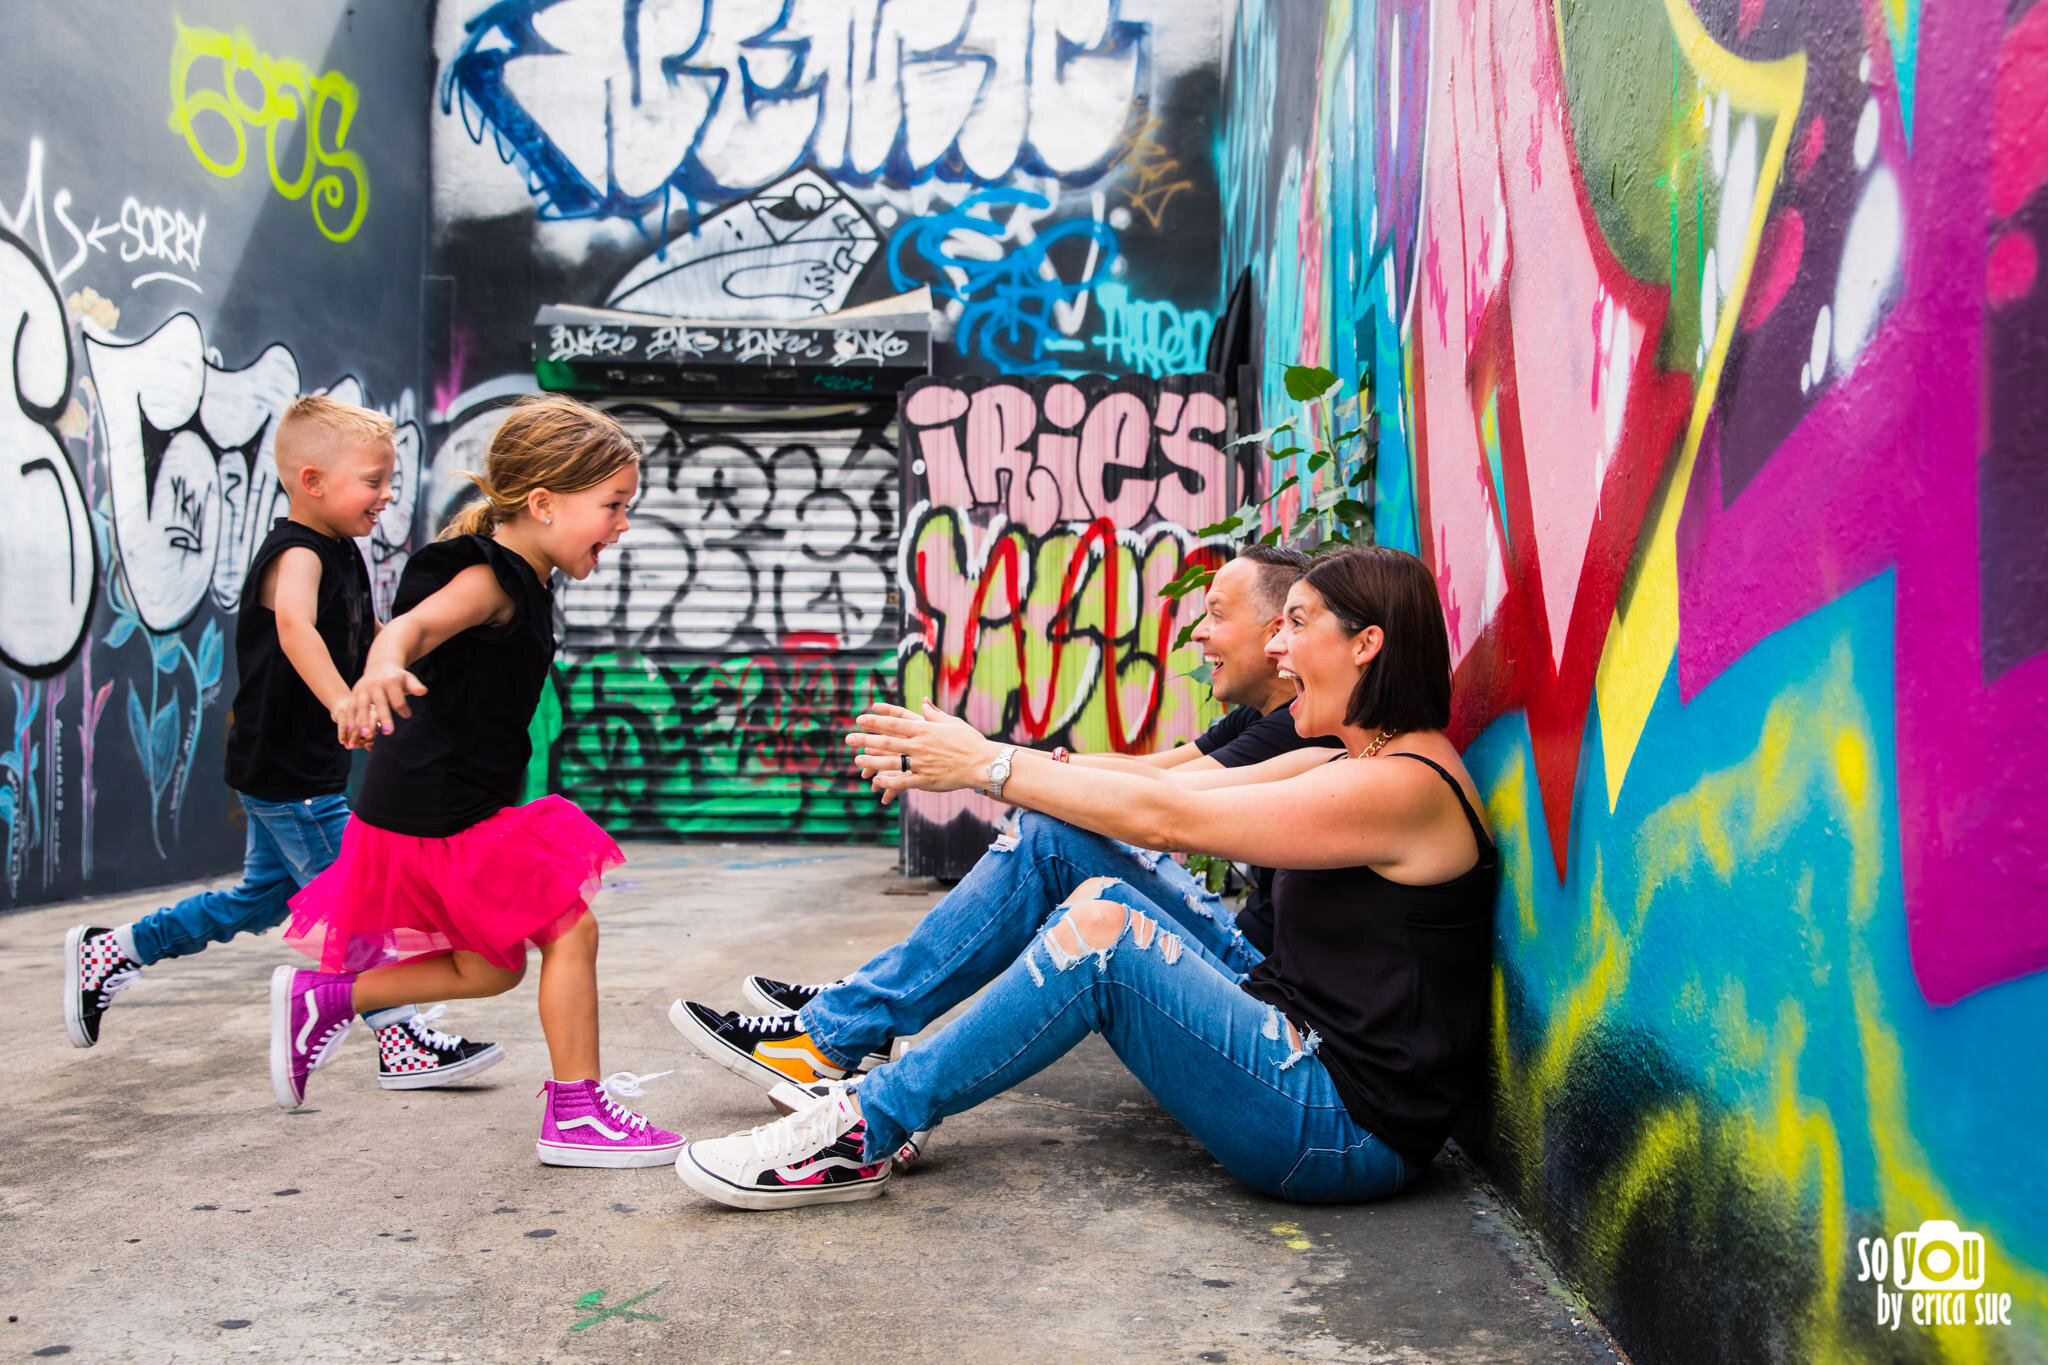 so-you-by-erica-wynwood-walls-lifestyle-family-photographer-session-2099.JPG